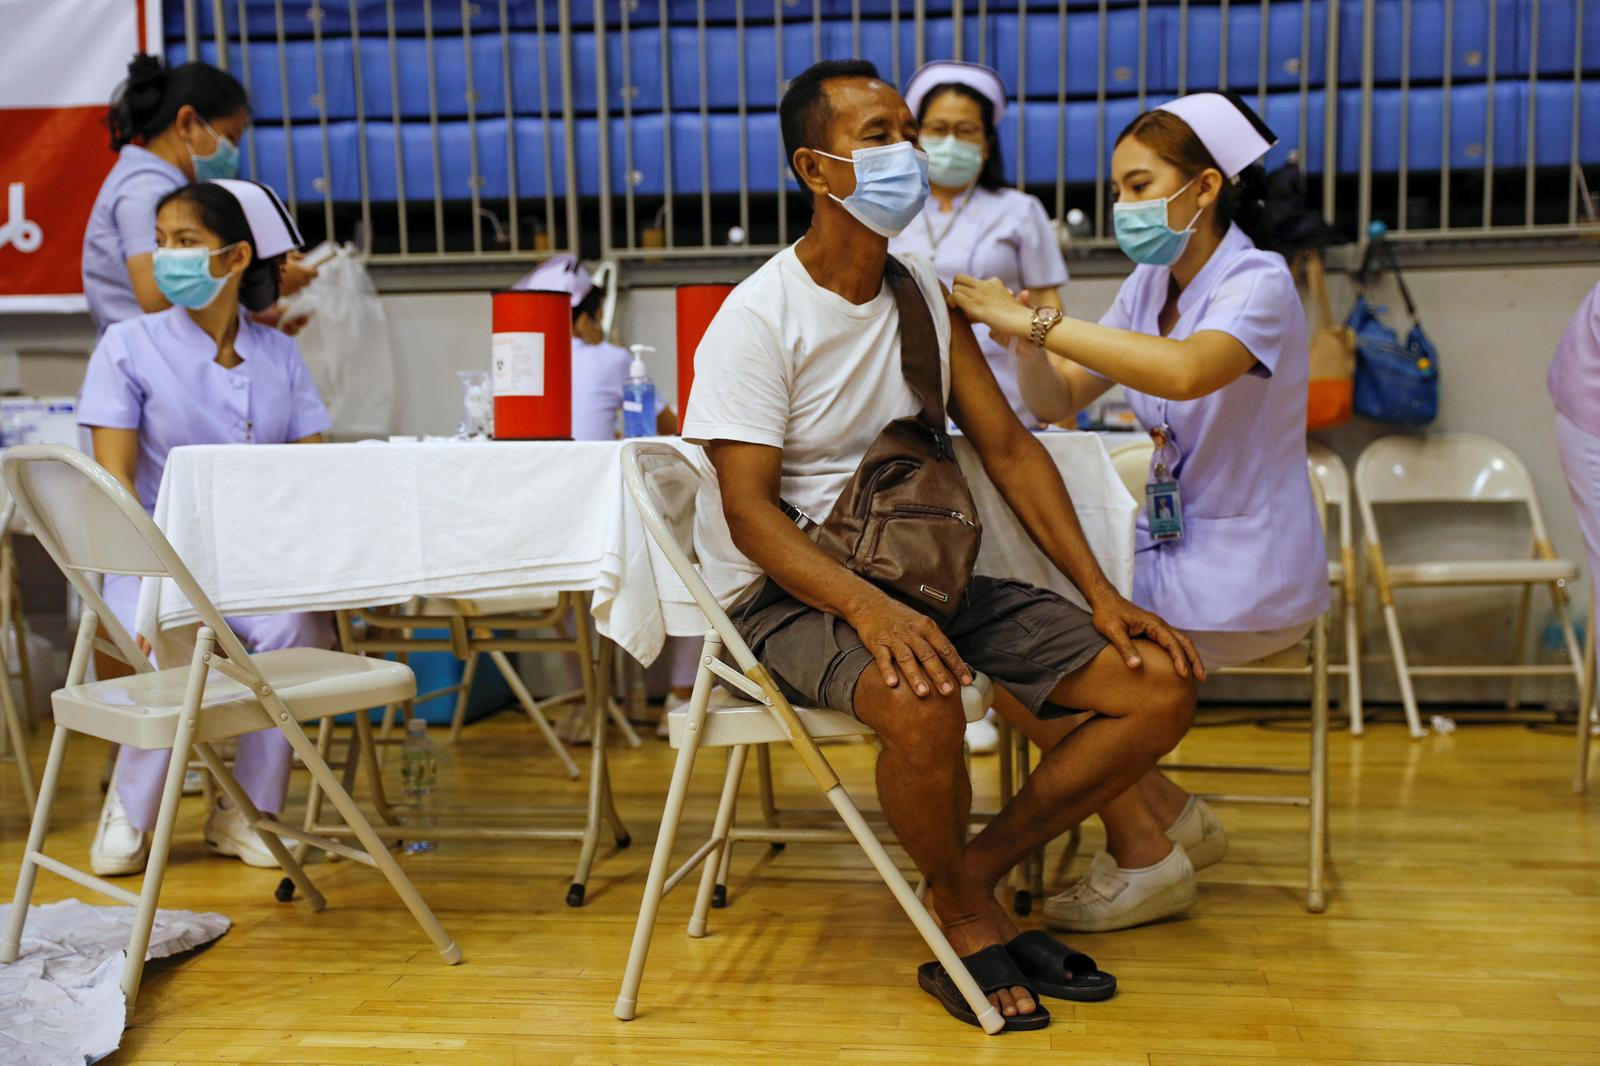 A man receives the Sinovac COVID-19 vaccine as the Thai resort island of Phuket rushes to vaccinate its population amid the coronavirus disease (COVID-19) outbreak, and ahead of a July 1 ending of strict quarantine for overseas visitors, to bring back tourism revenue in Phuket, Thailand, April 1, 2021.  Photo: Reuters